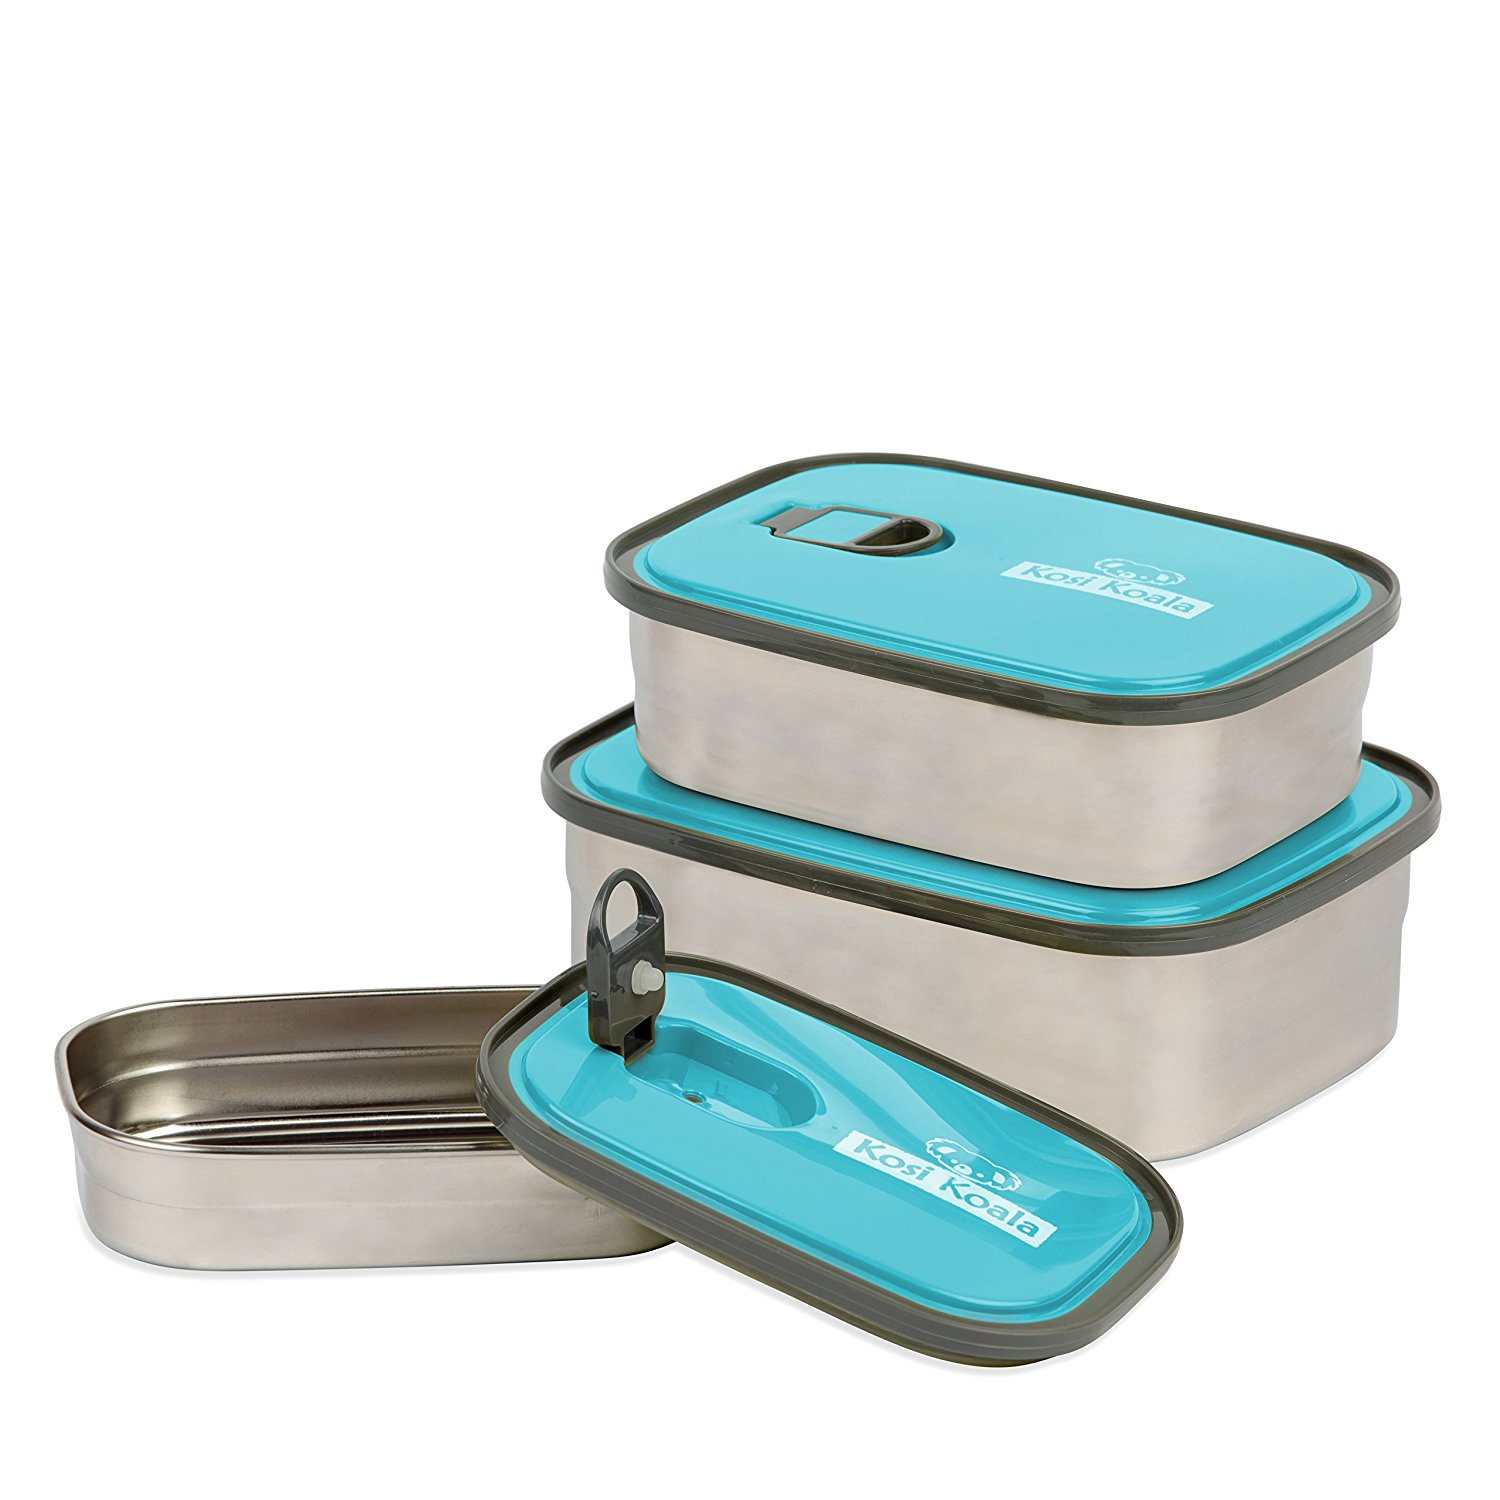 Bento lunch box containers and accessories bento lunch for Decor 6l container